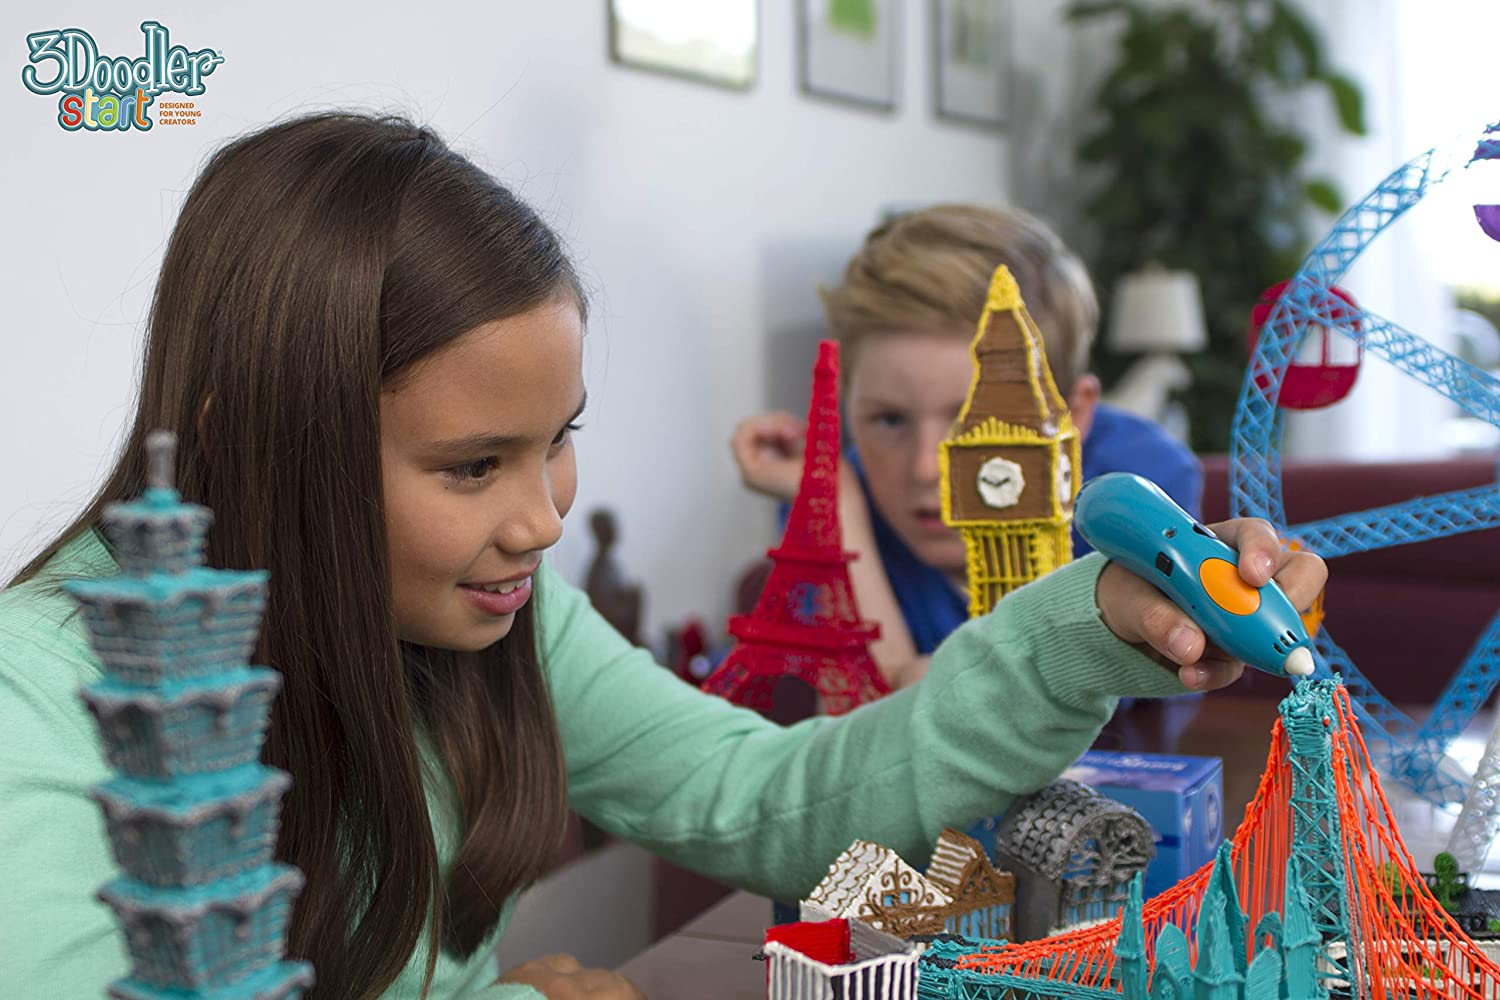 How To Choose The Best 3D Pen for Kids